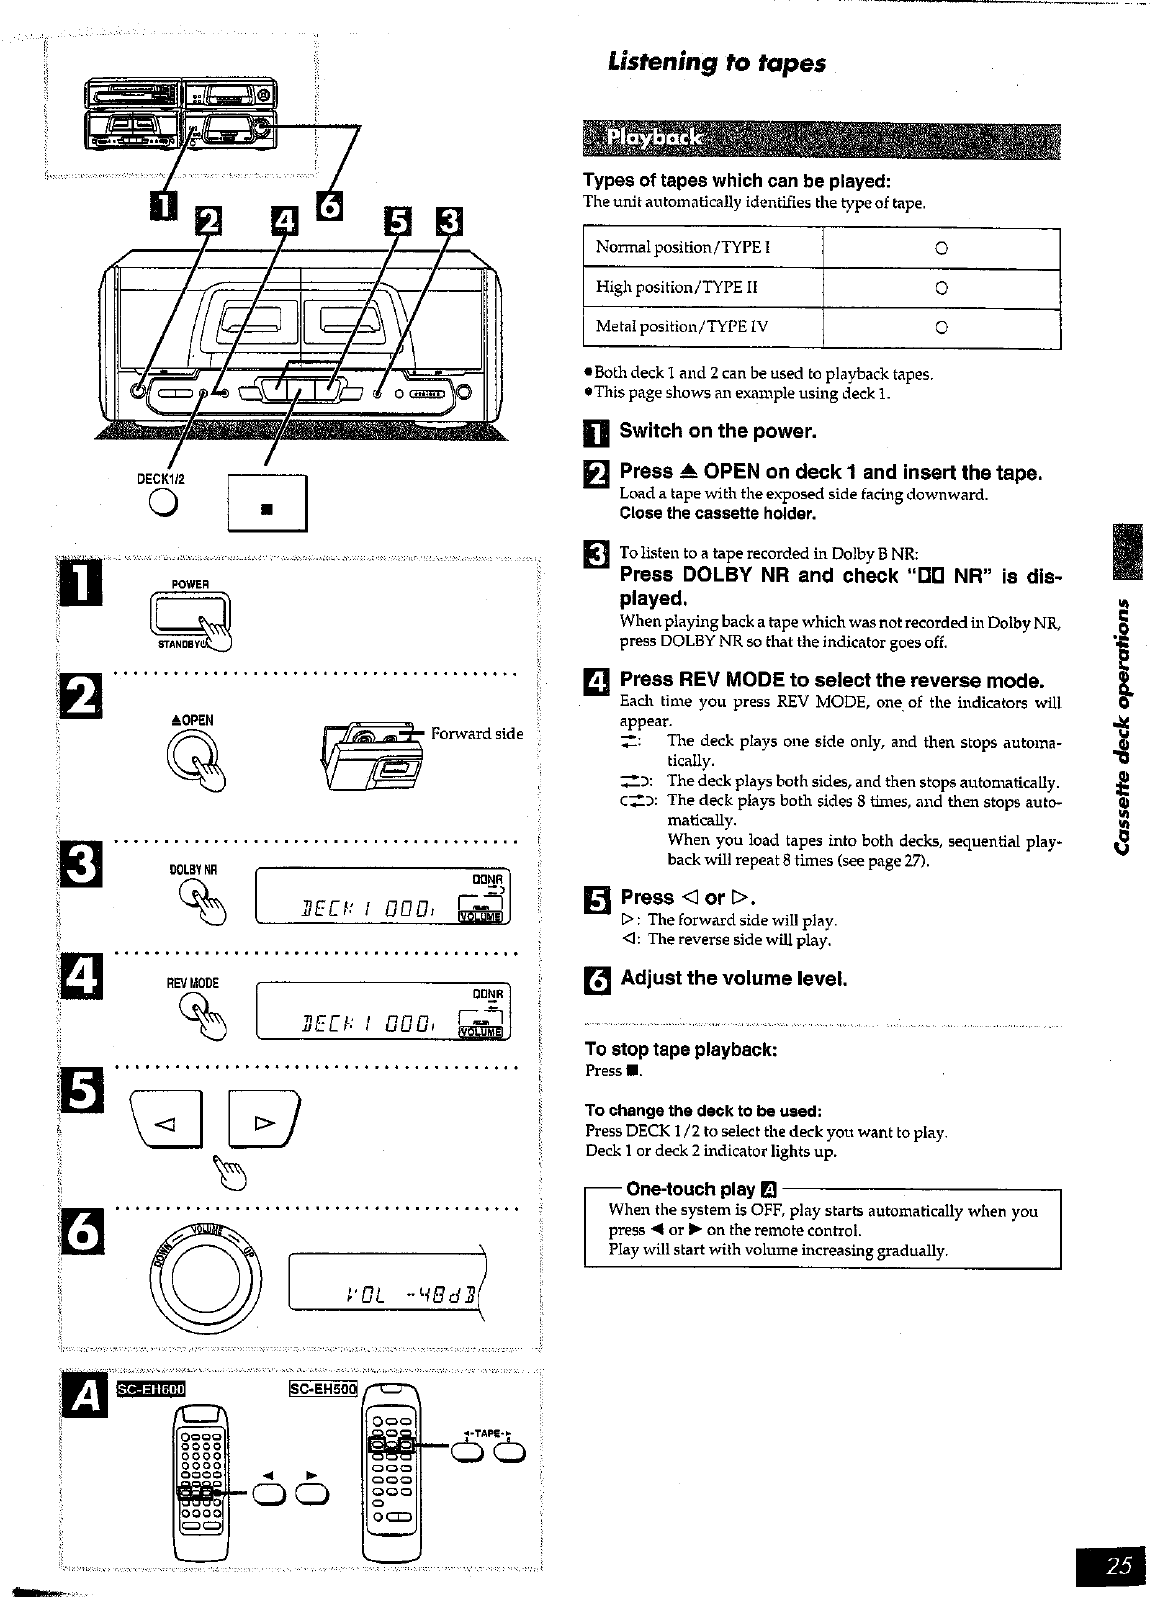 Page 25 of Technics Stereo System SC-EH600 User Guide